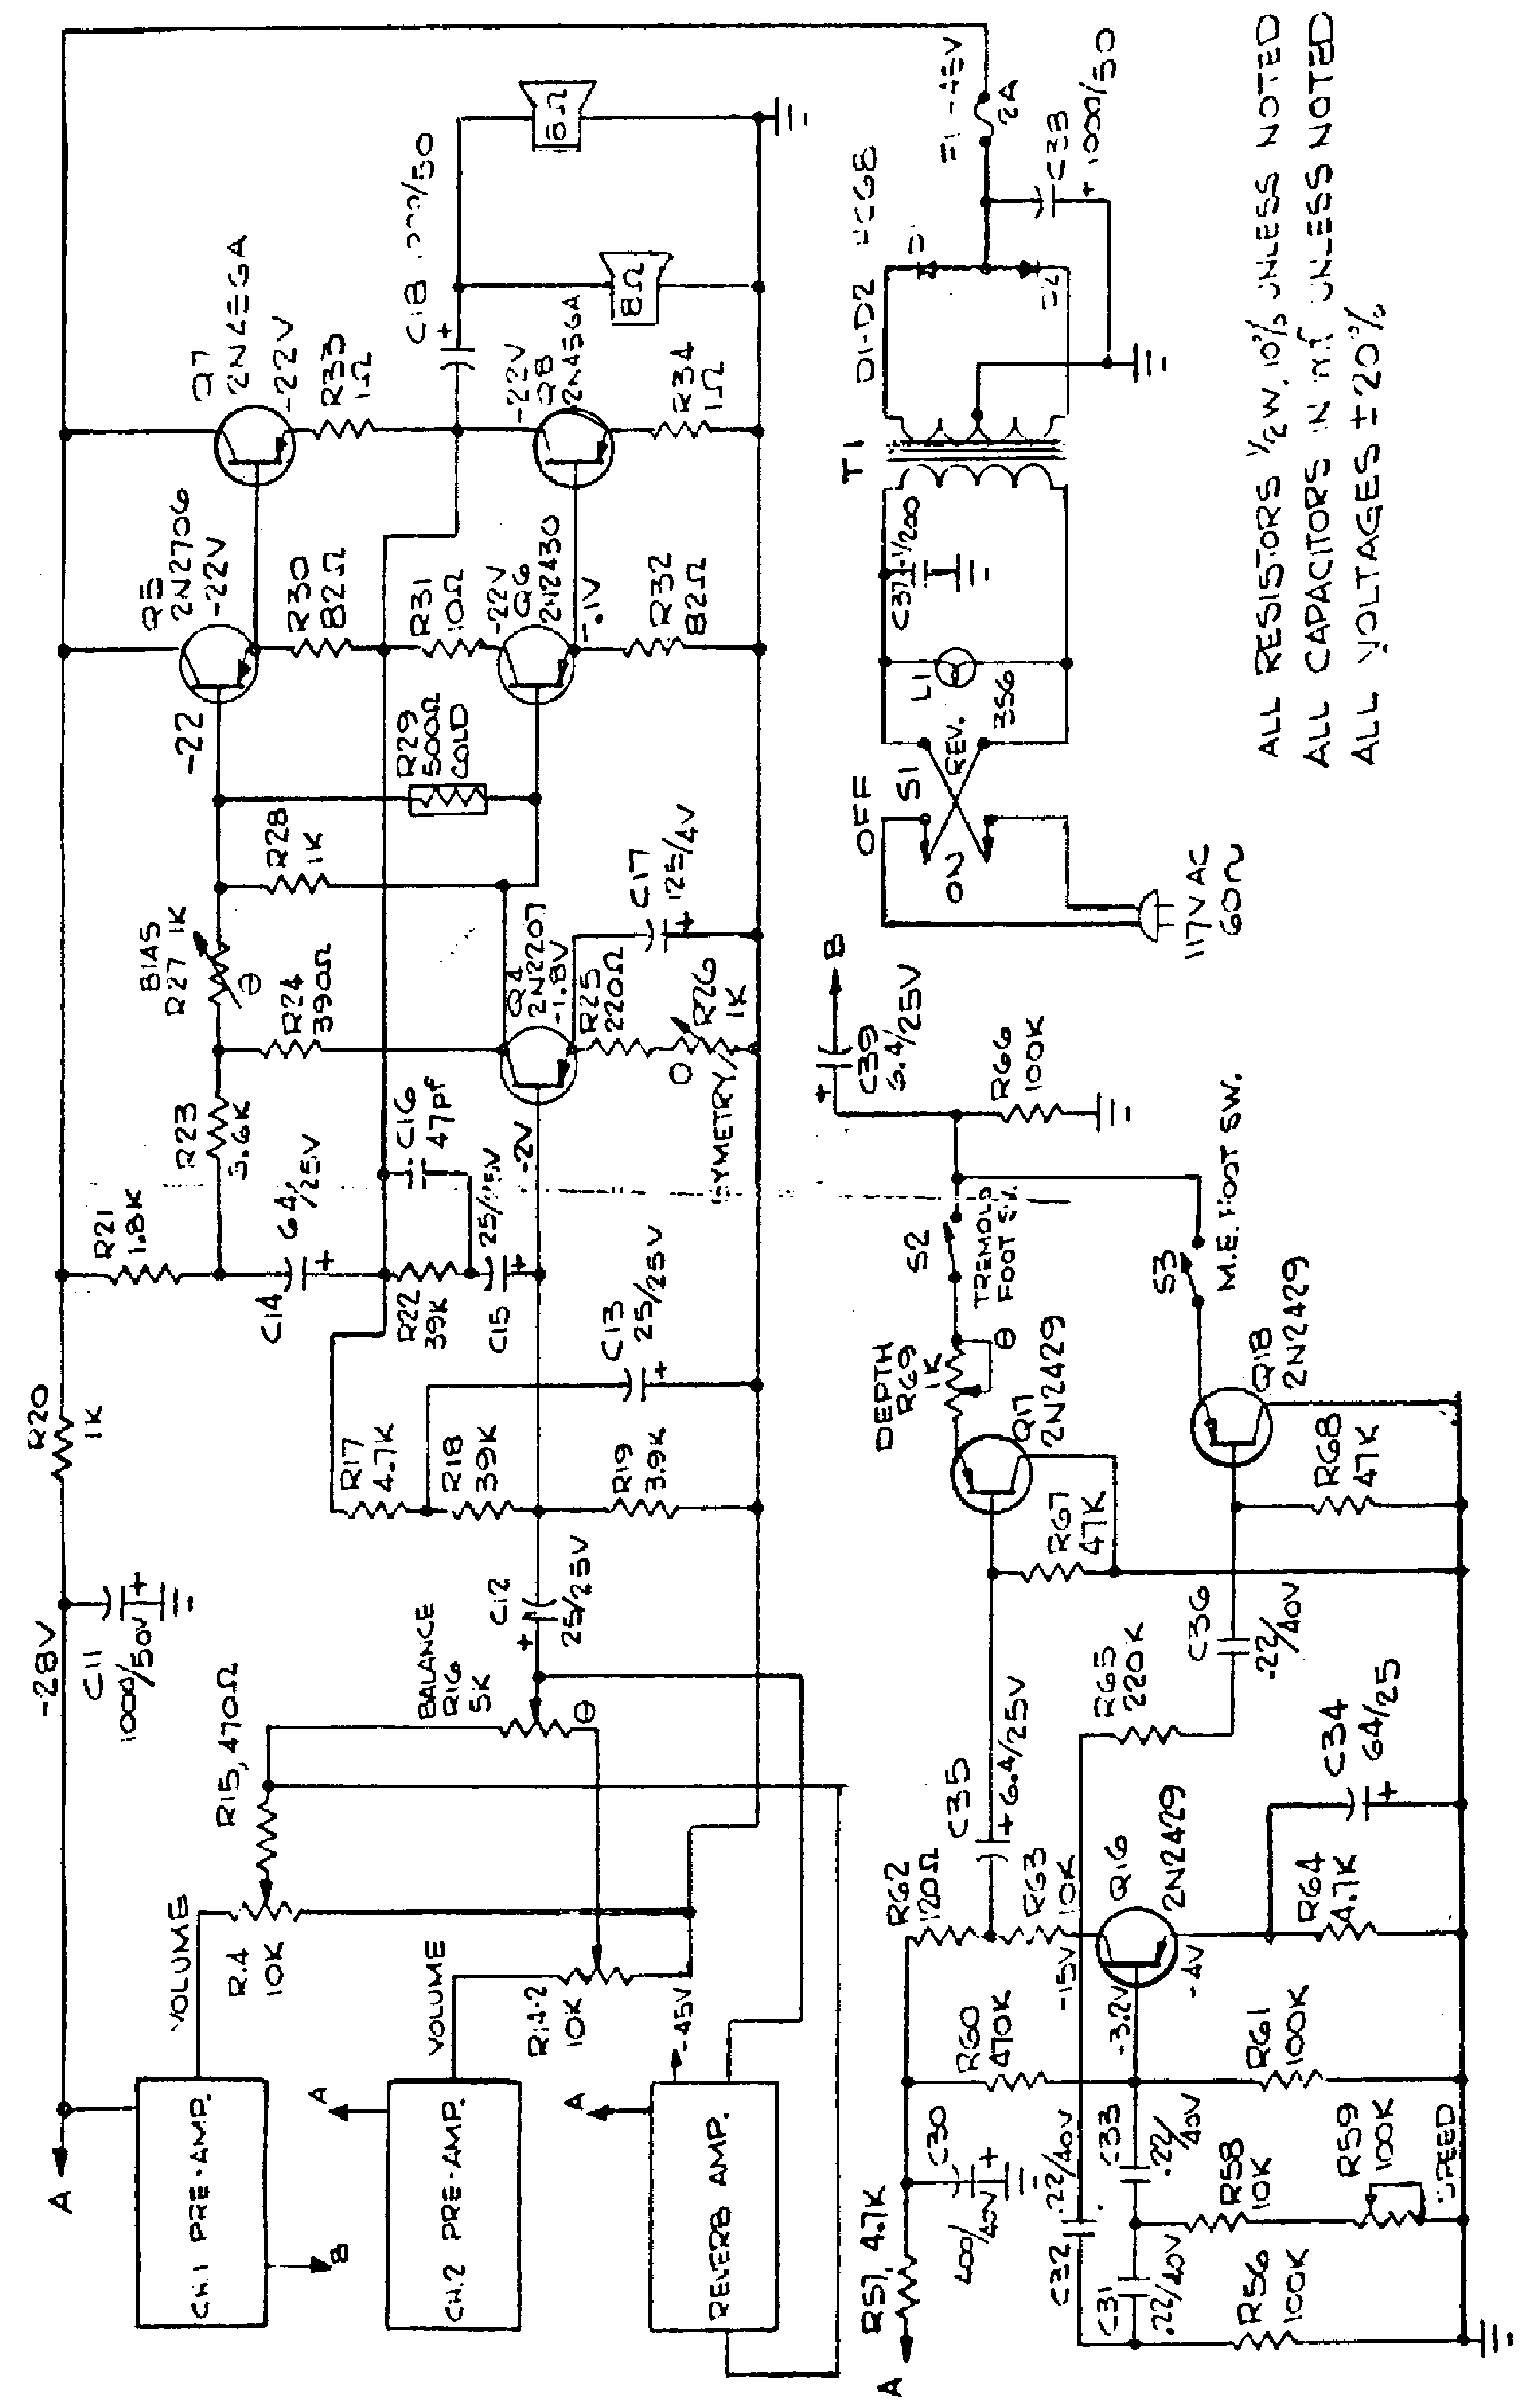 gretsch wiring diagram    gretsch    electromatic    wiring       diagram        gretsch    electromatic    wiring       diagram